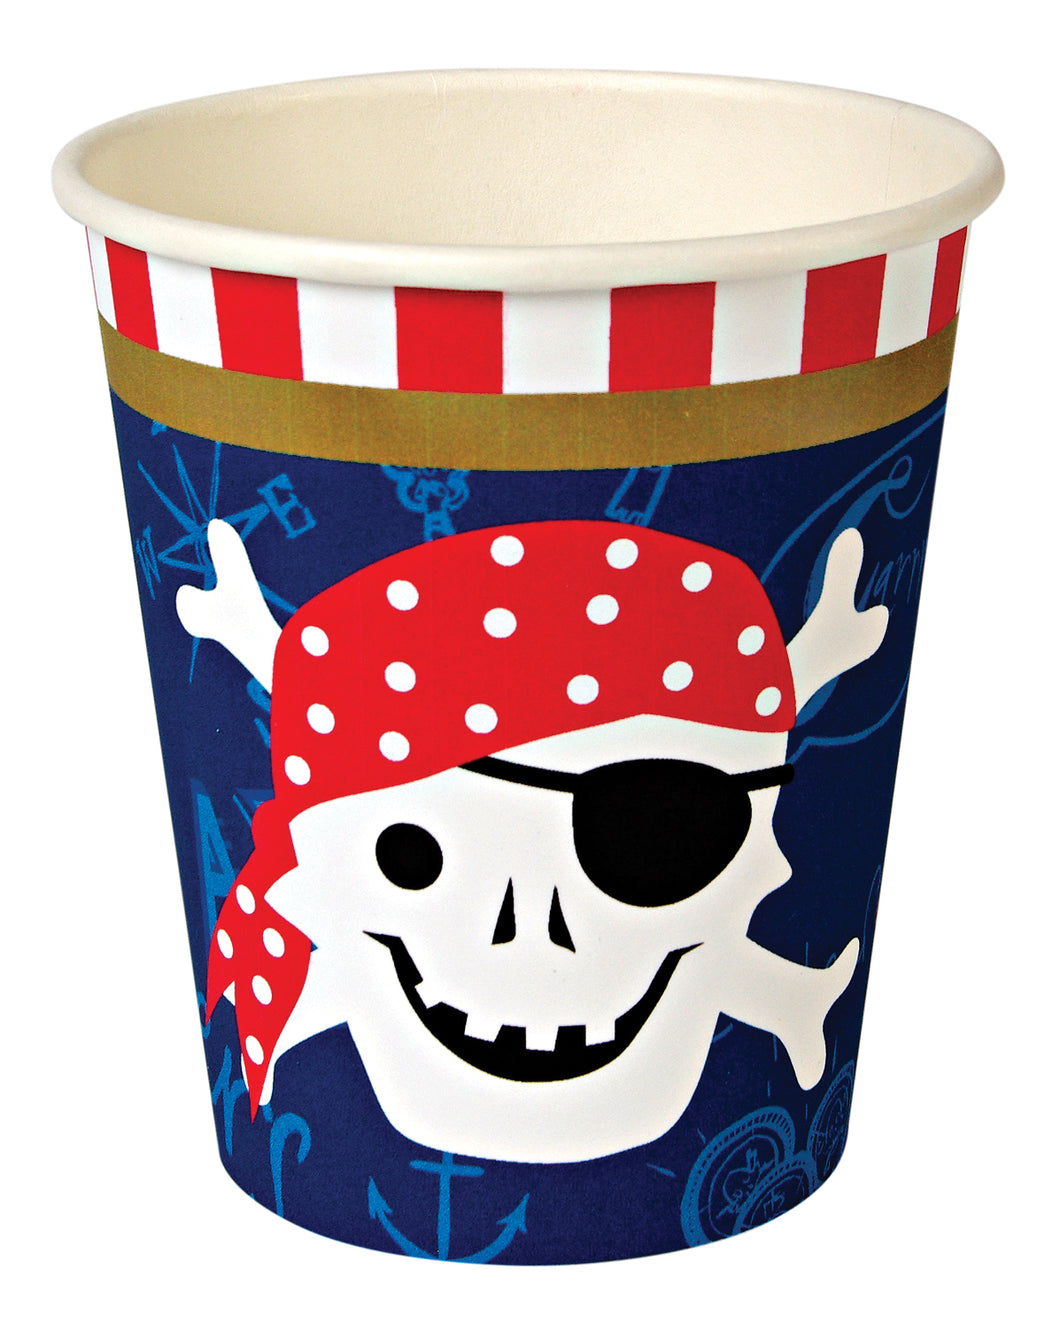 Ahoy There Pirate, 12 hot or cold party cups by meri meri